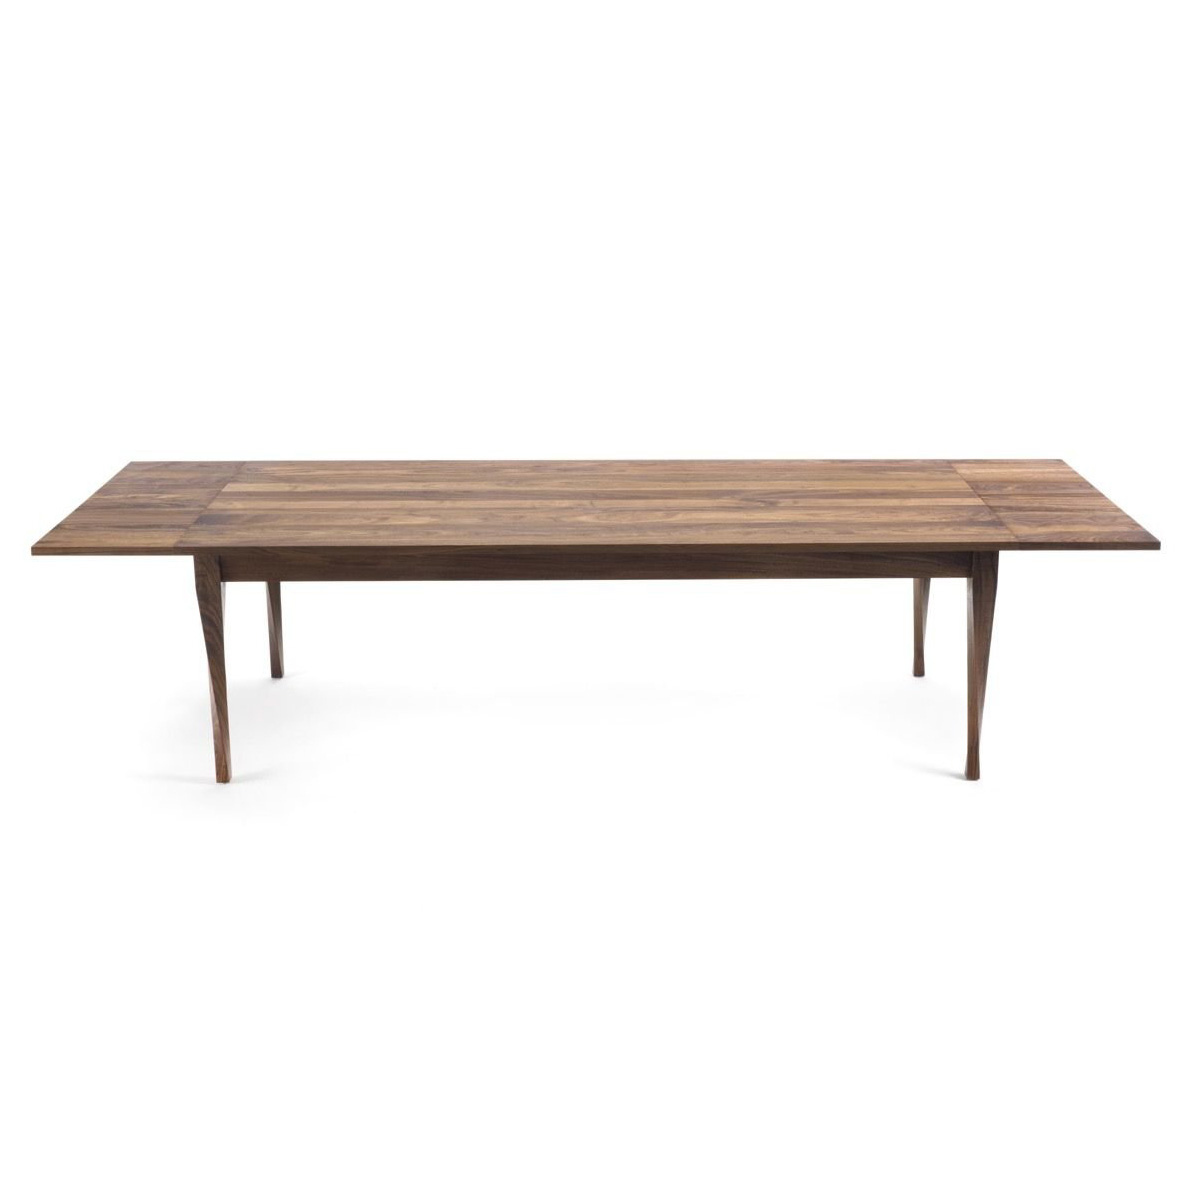 Denver Too dining table from Riva 1920